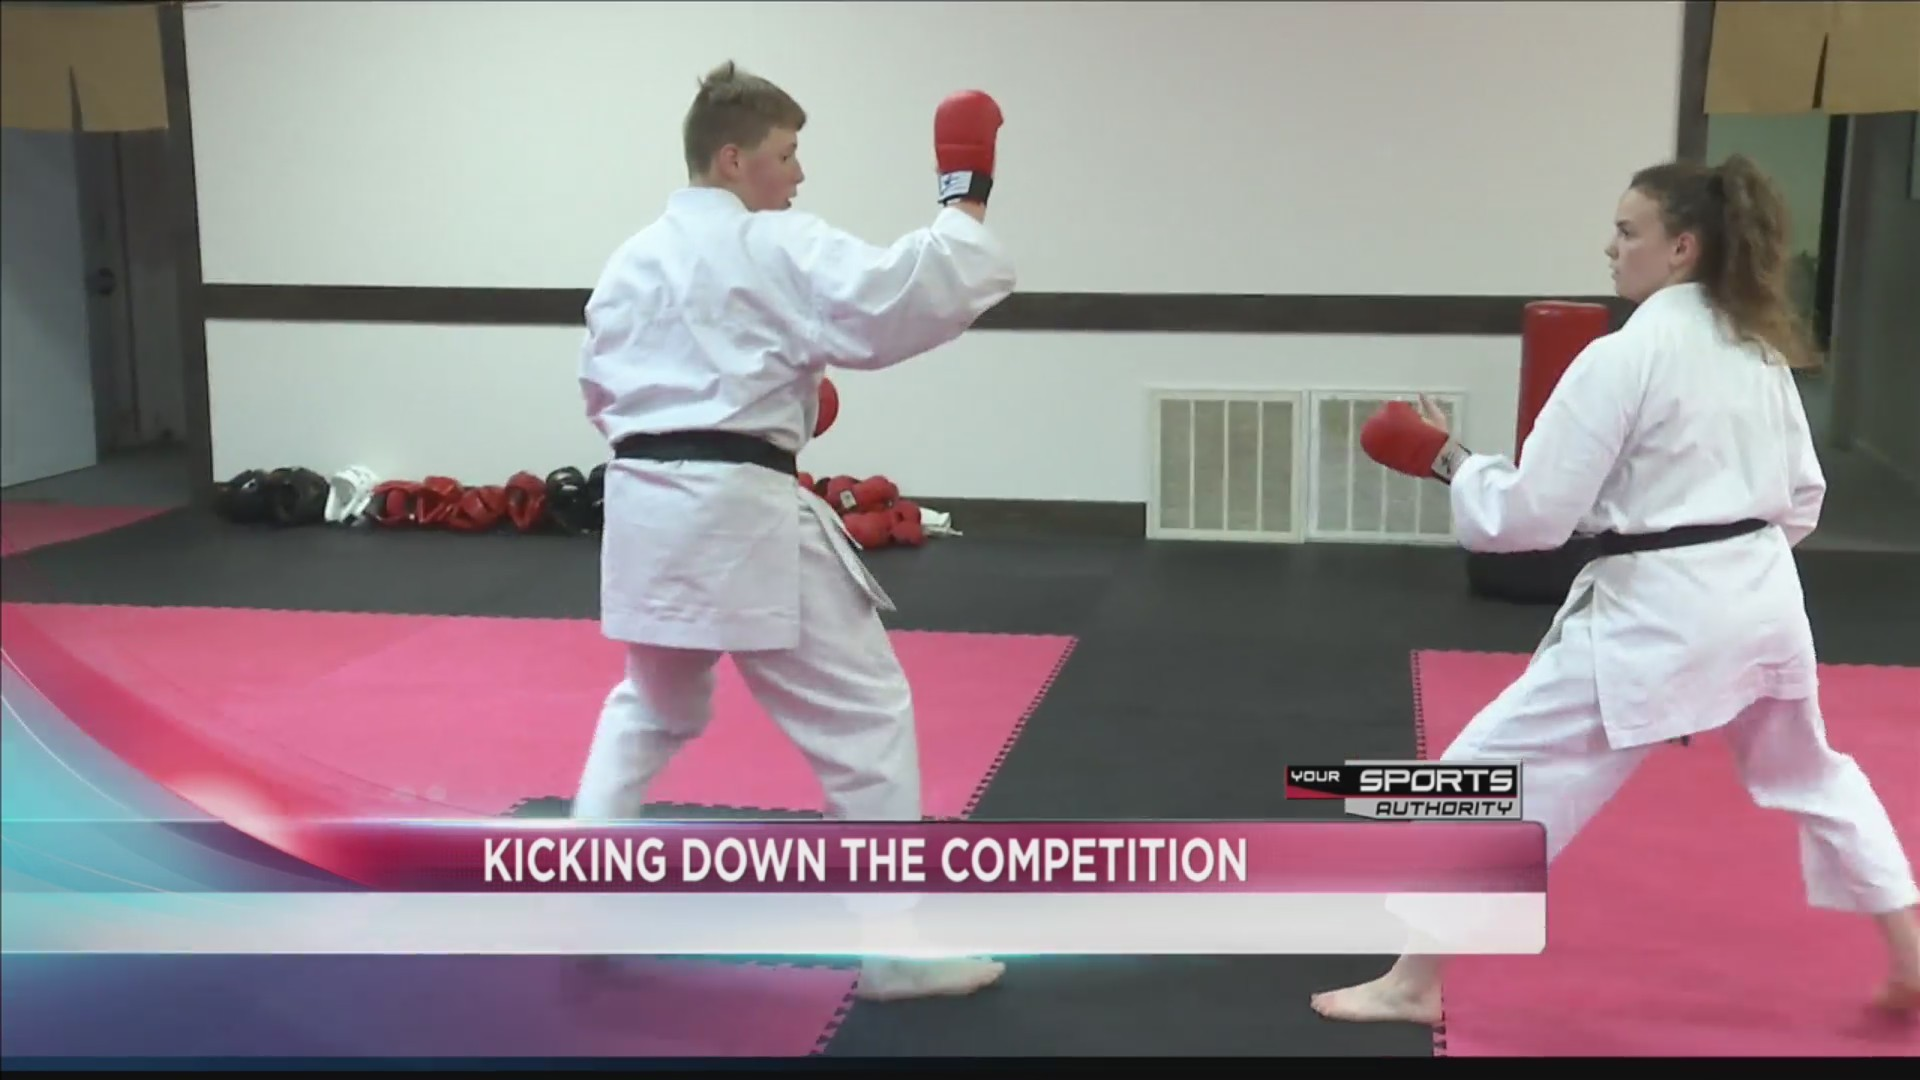 Budo traditional karate kicks past the competition